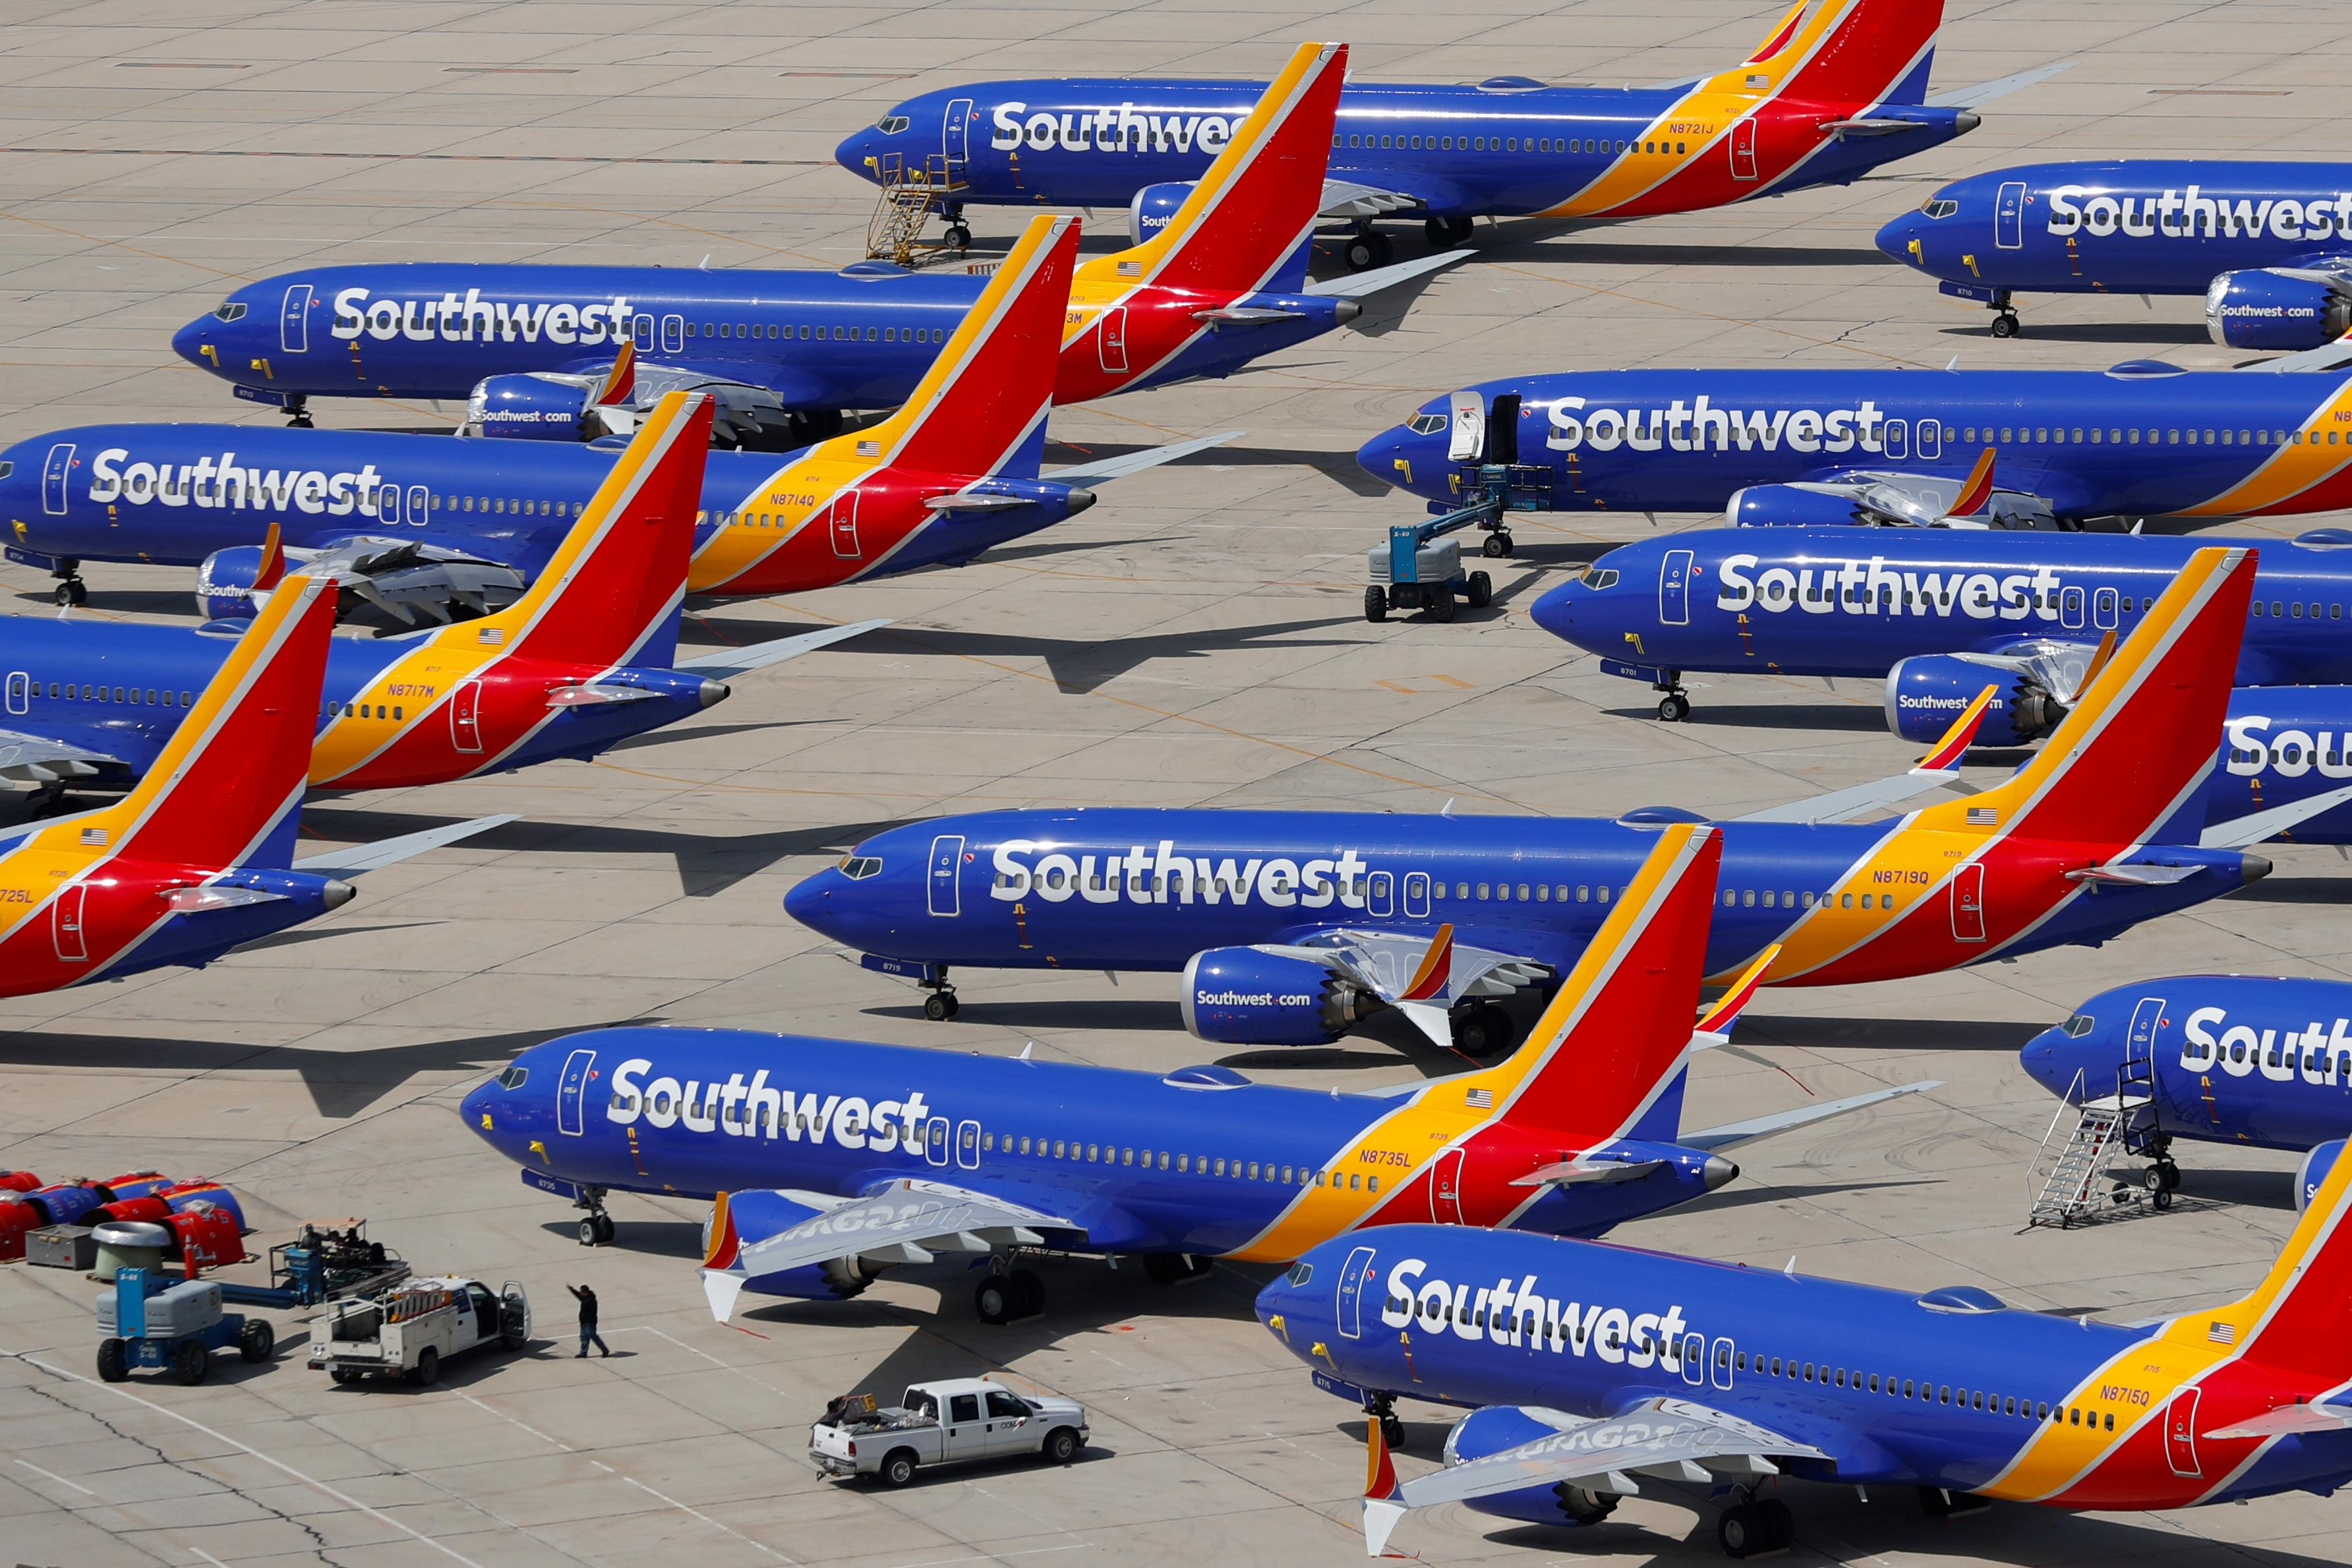 Southwest removes 737 MAX jets from schedule through August 5